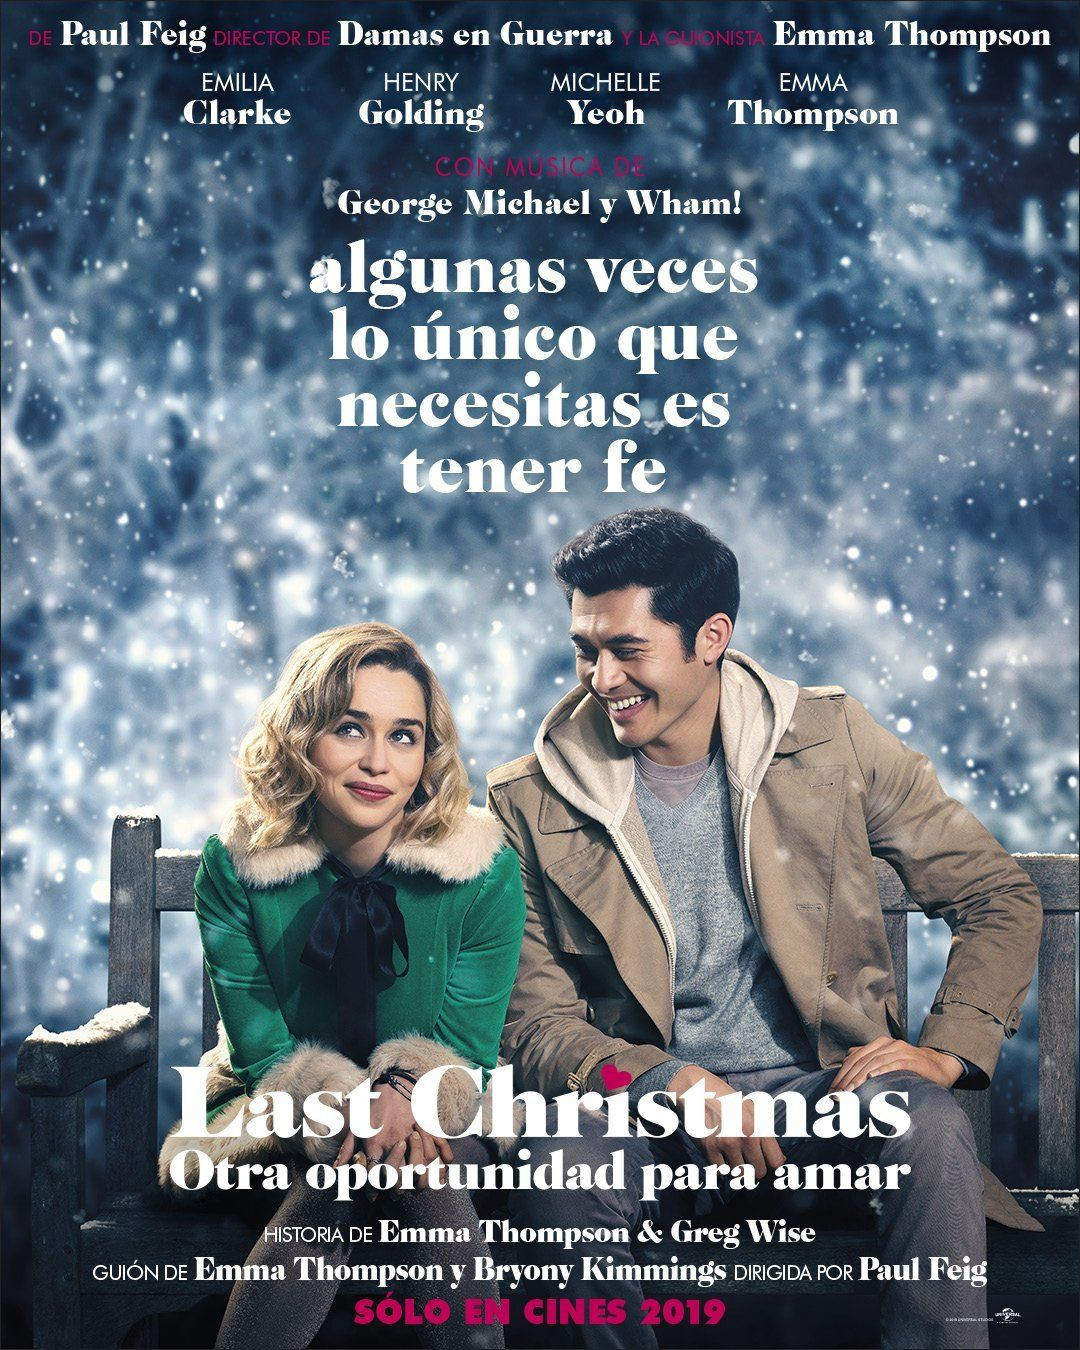 Last Christmas Movie Source Some Last Christmas Posters And Release Dates Free Movies Online Last Christmas Movie Watch Free Movies Online